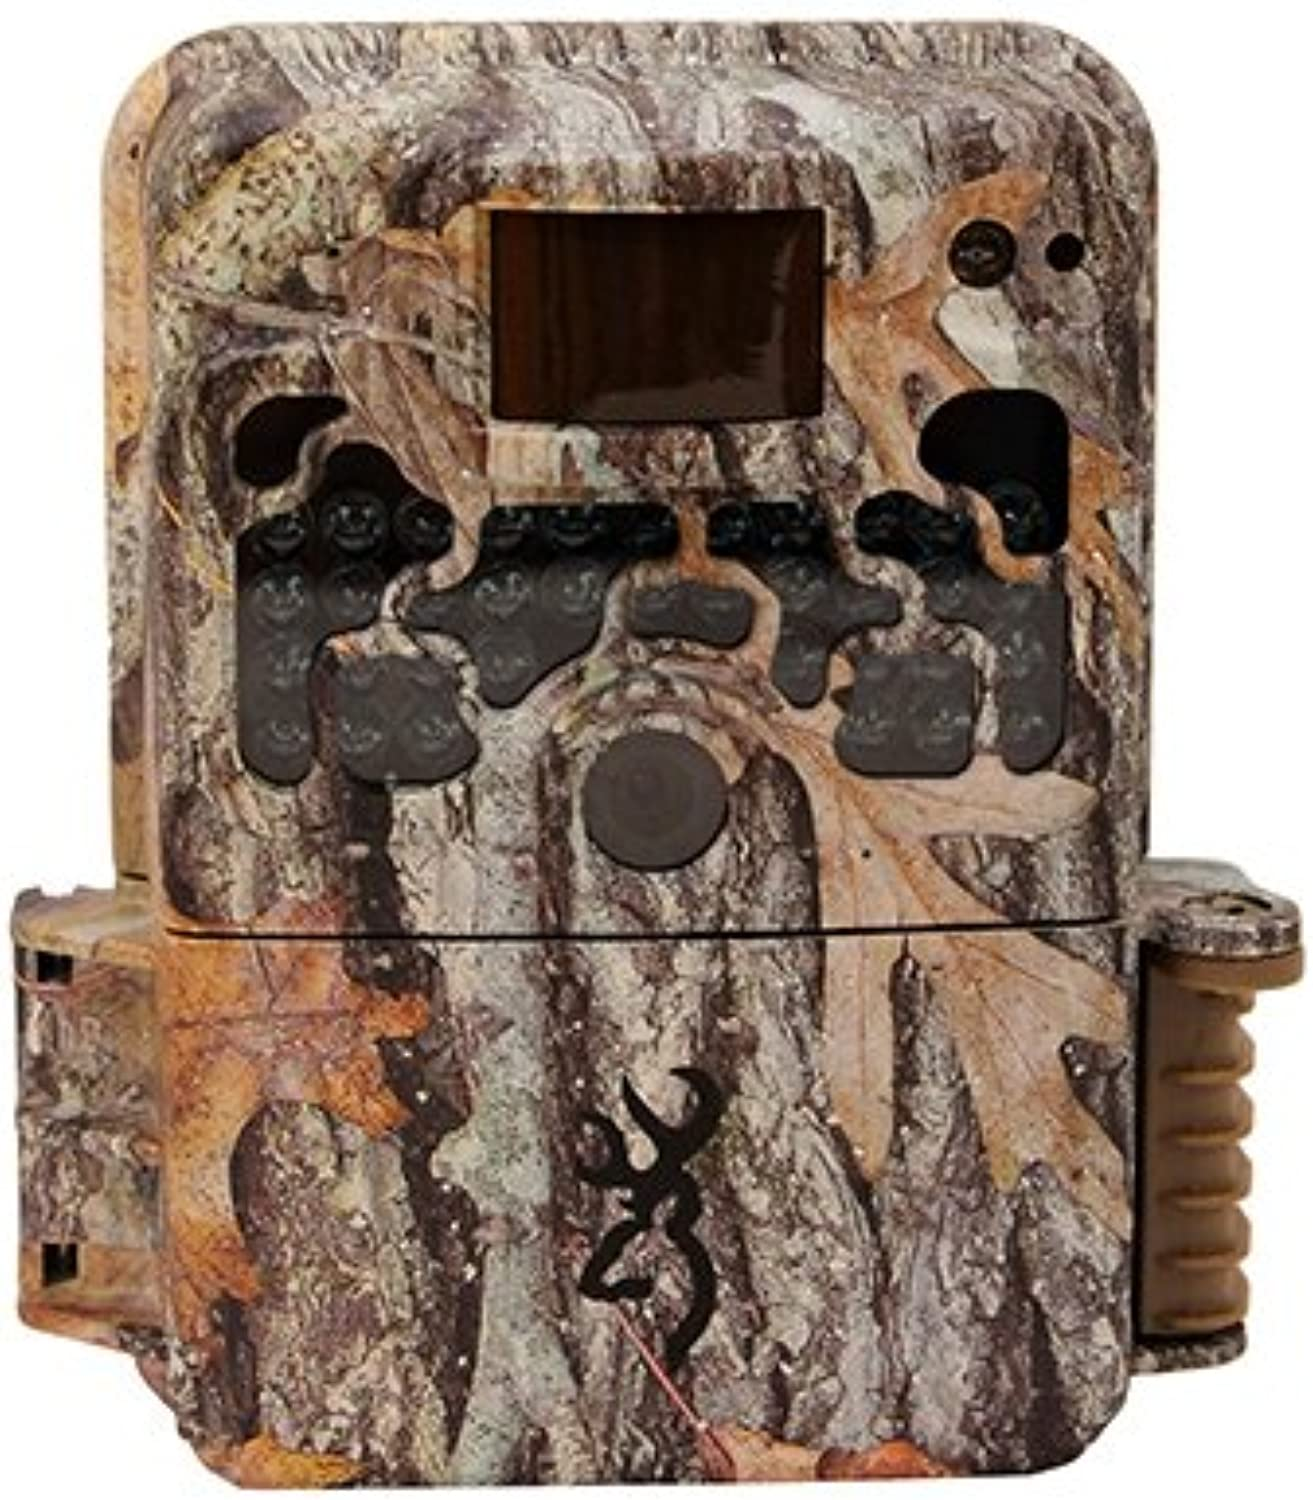 78117ca8a4b4 brauning brauning brauning Trail Cameras BCA Strike Force 850 16MP ...